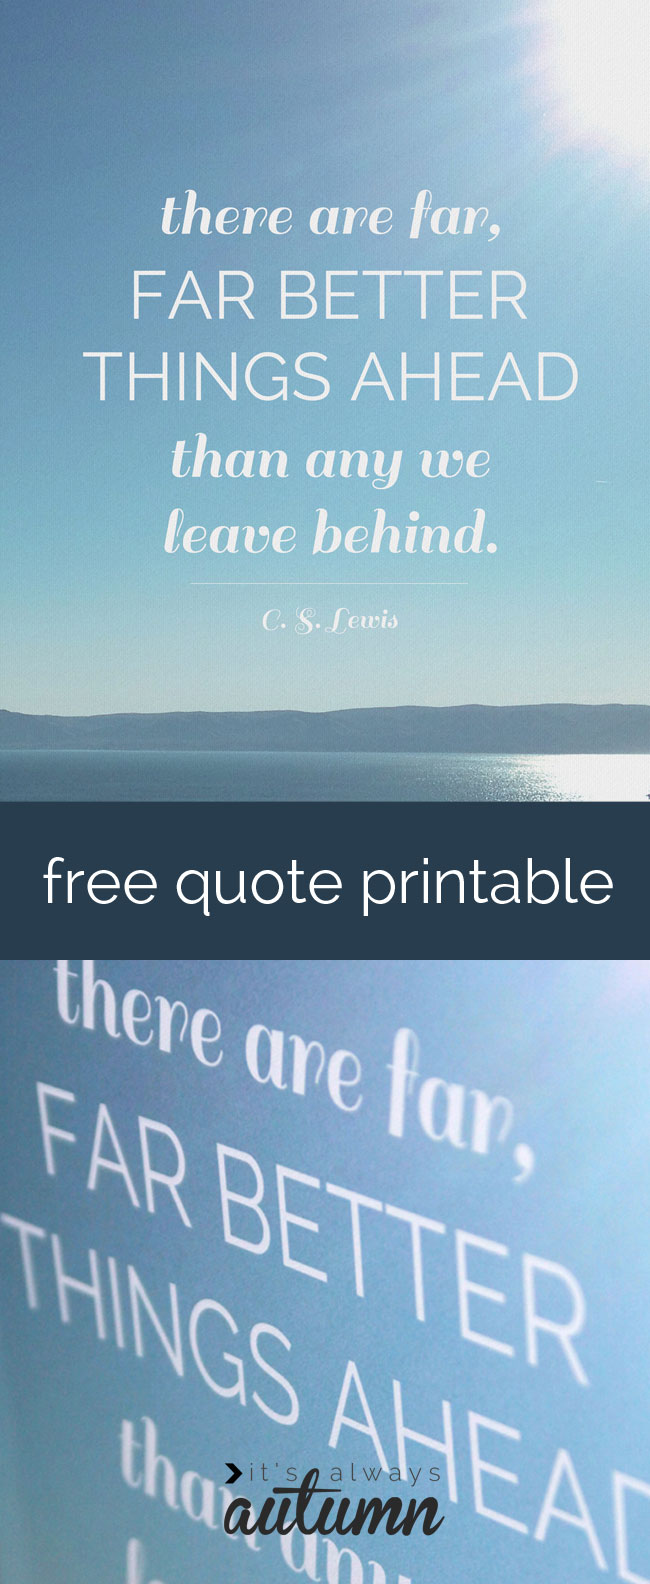 Free Cs Lewis Quote Printable Far Better Things Ahead Its